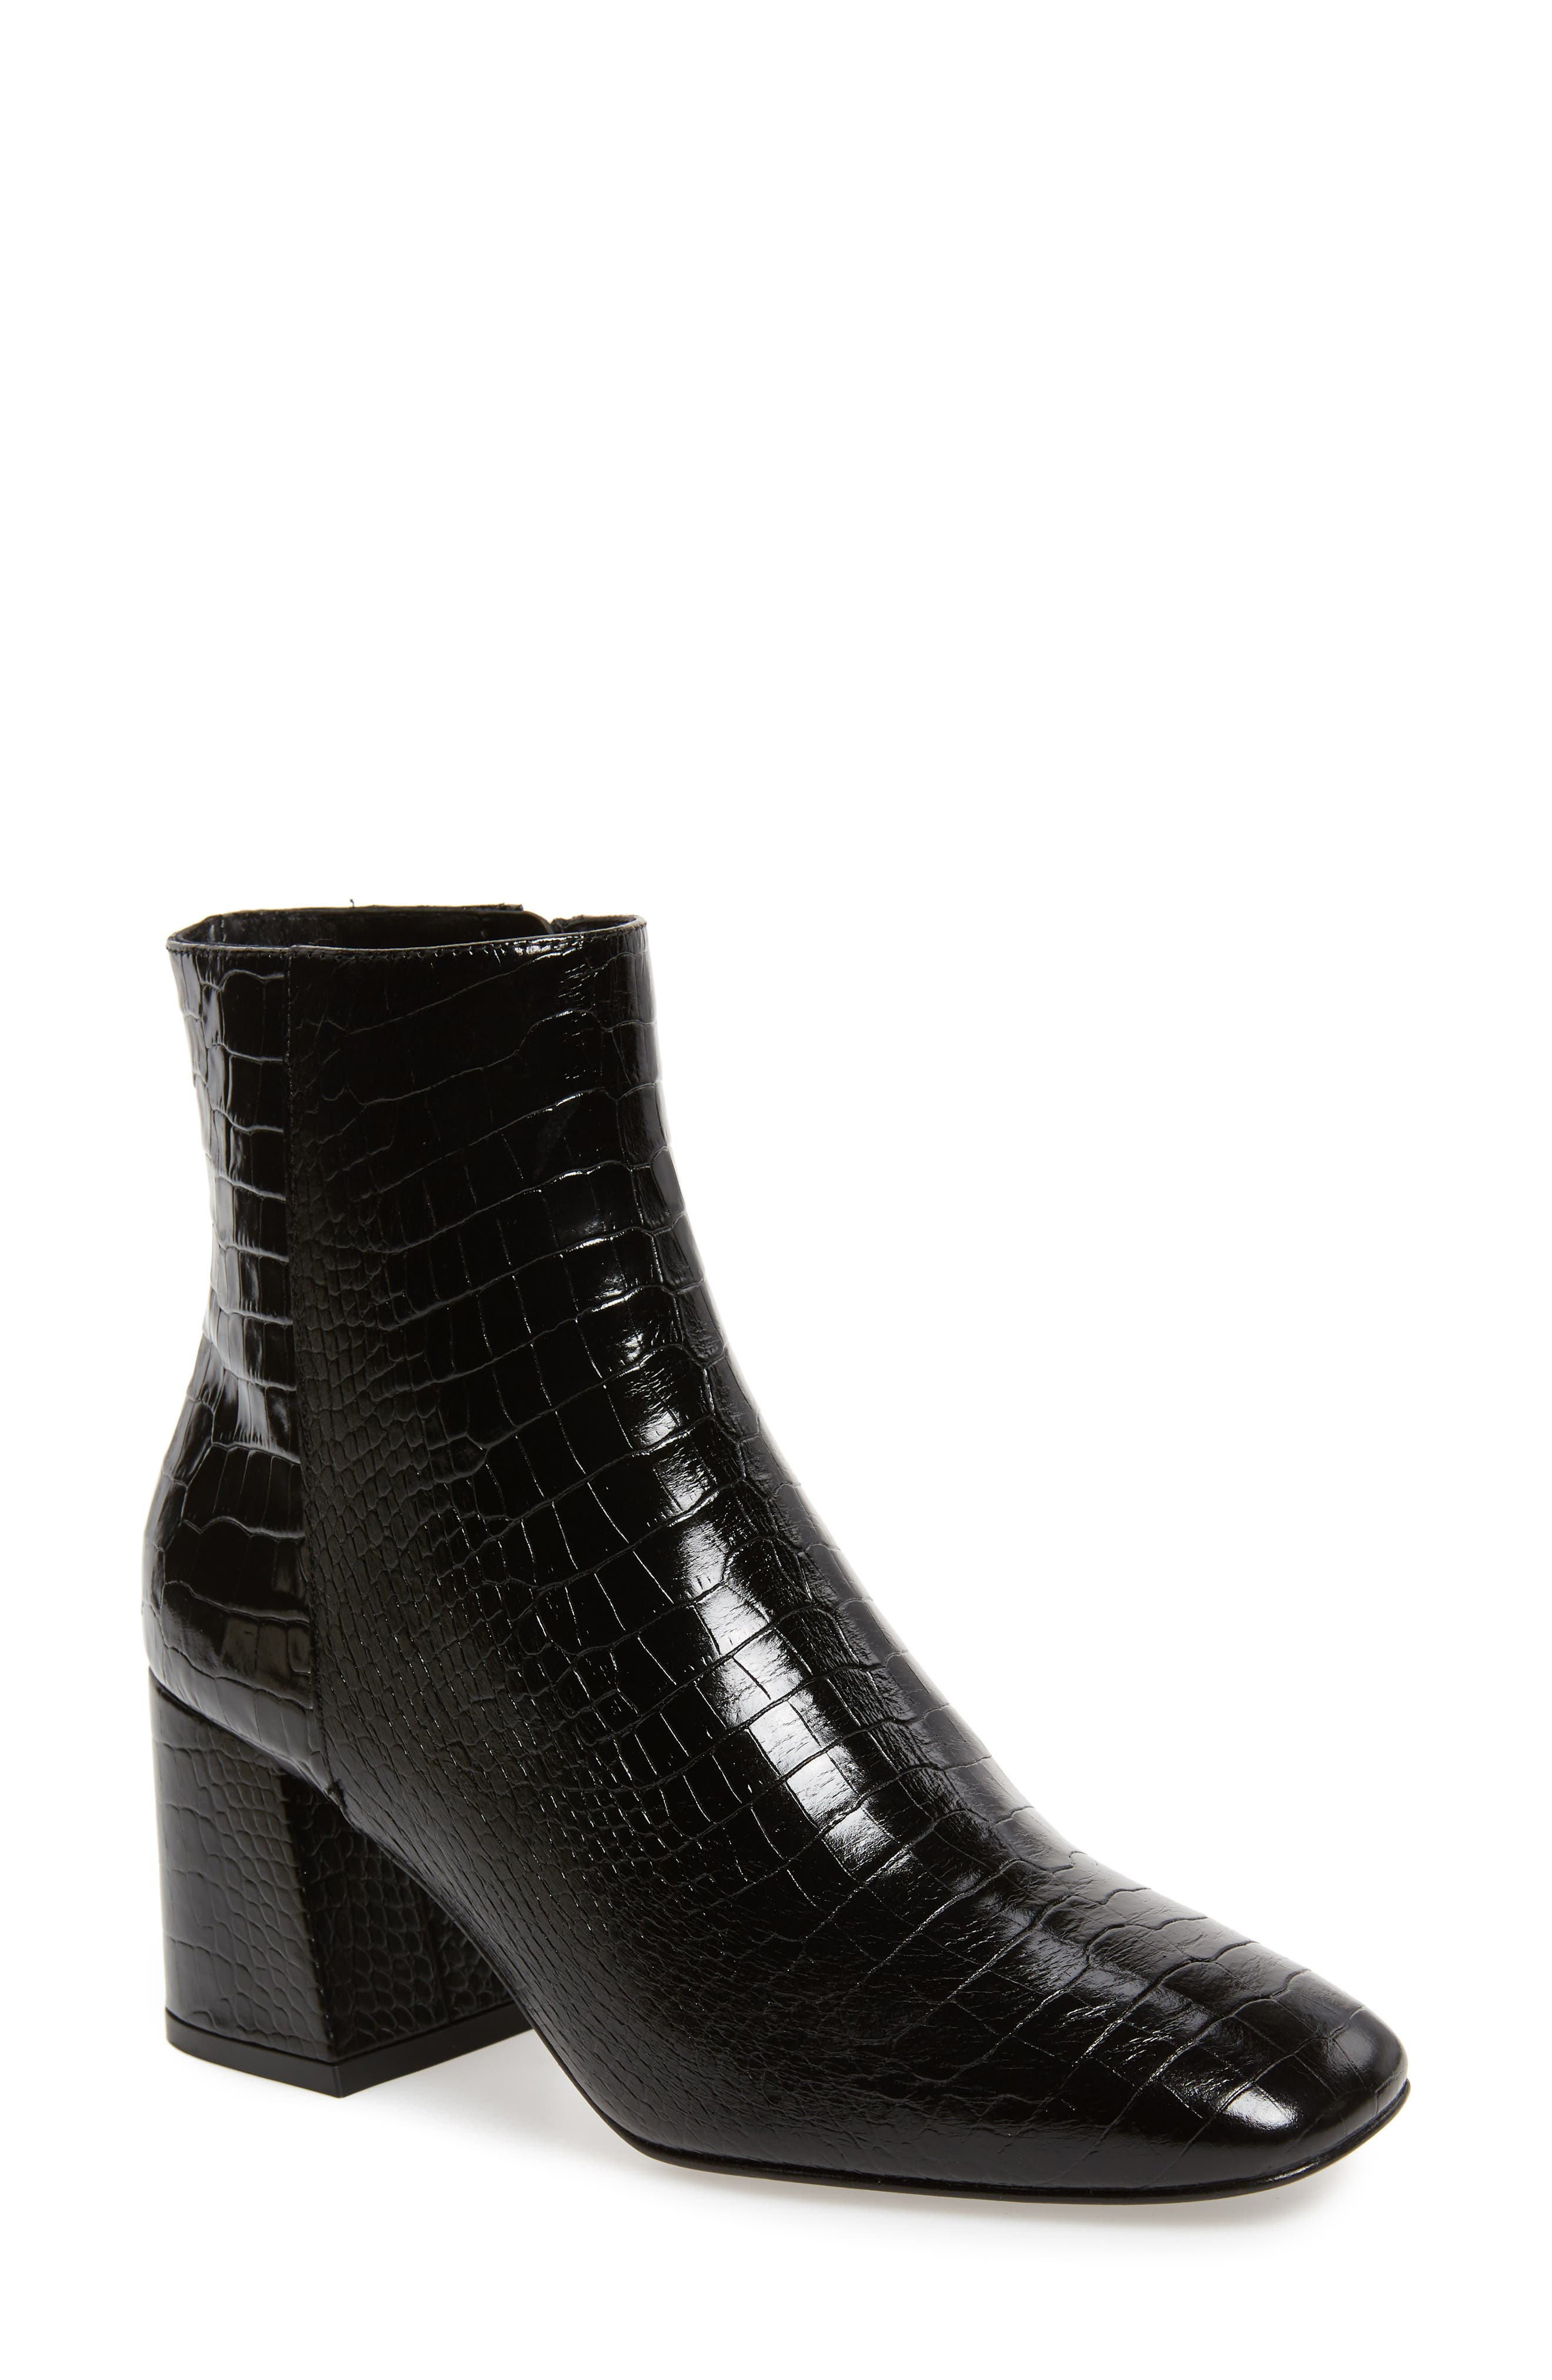 FREDA SALVADOR Charm Reptile Embossed Bootie in Black Croc Printed Leater